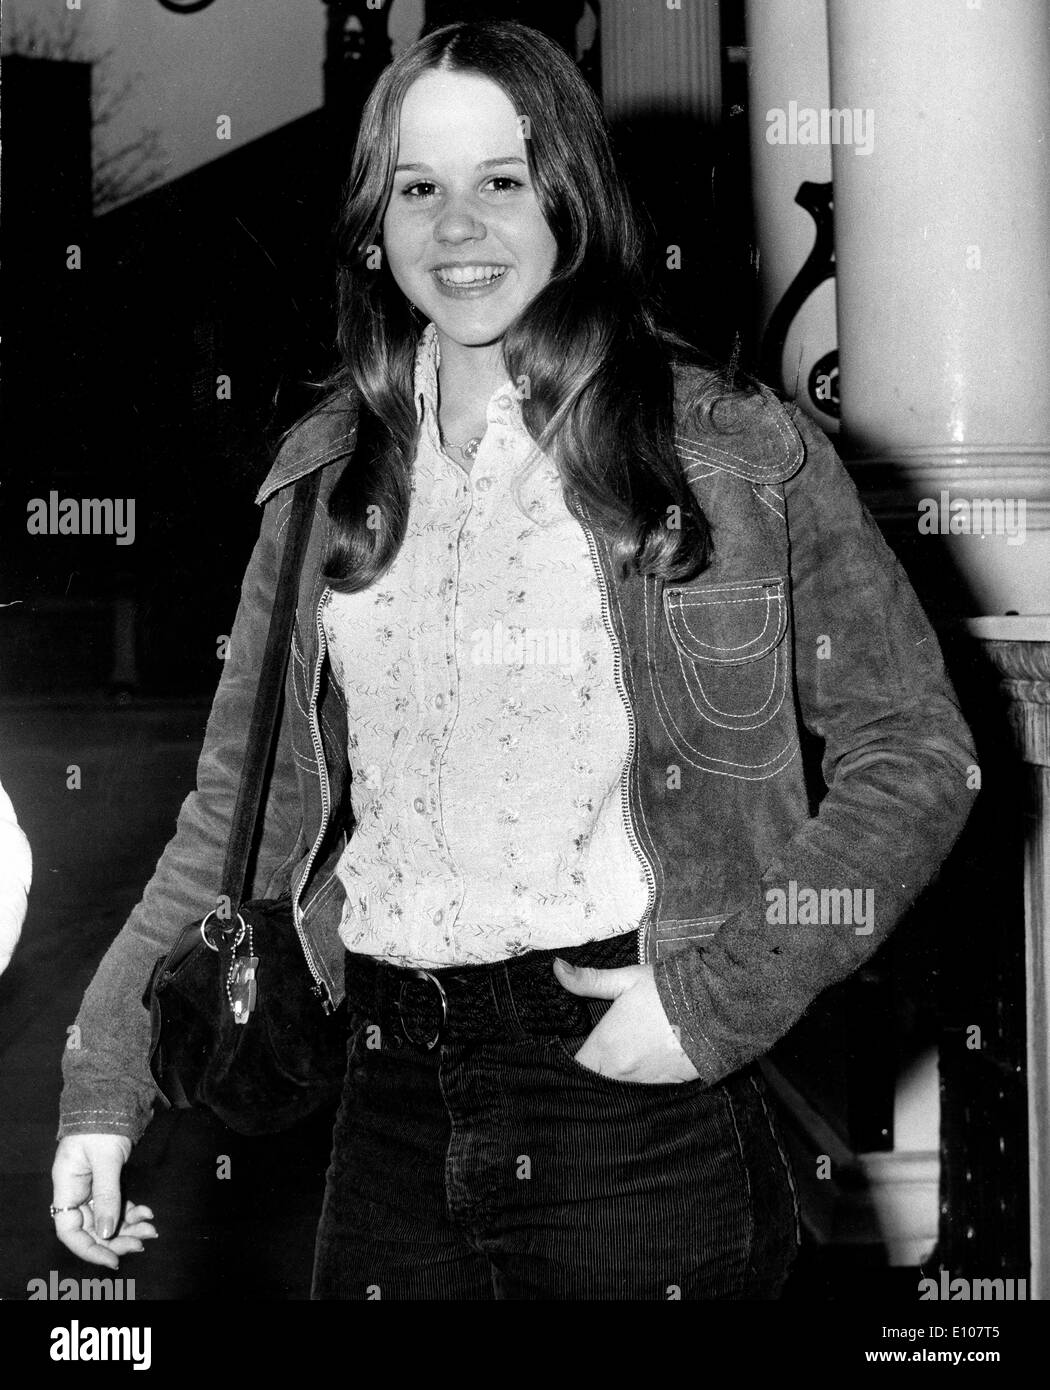 actress linda blair arrives for the exorcist premiere stock photo